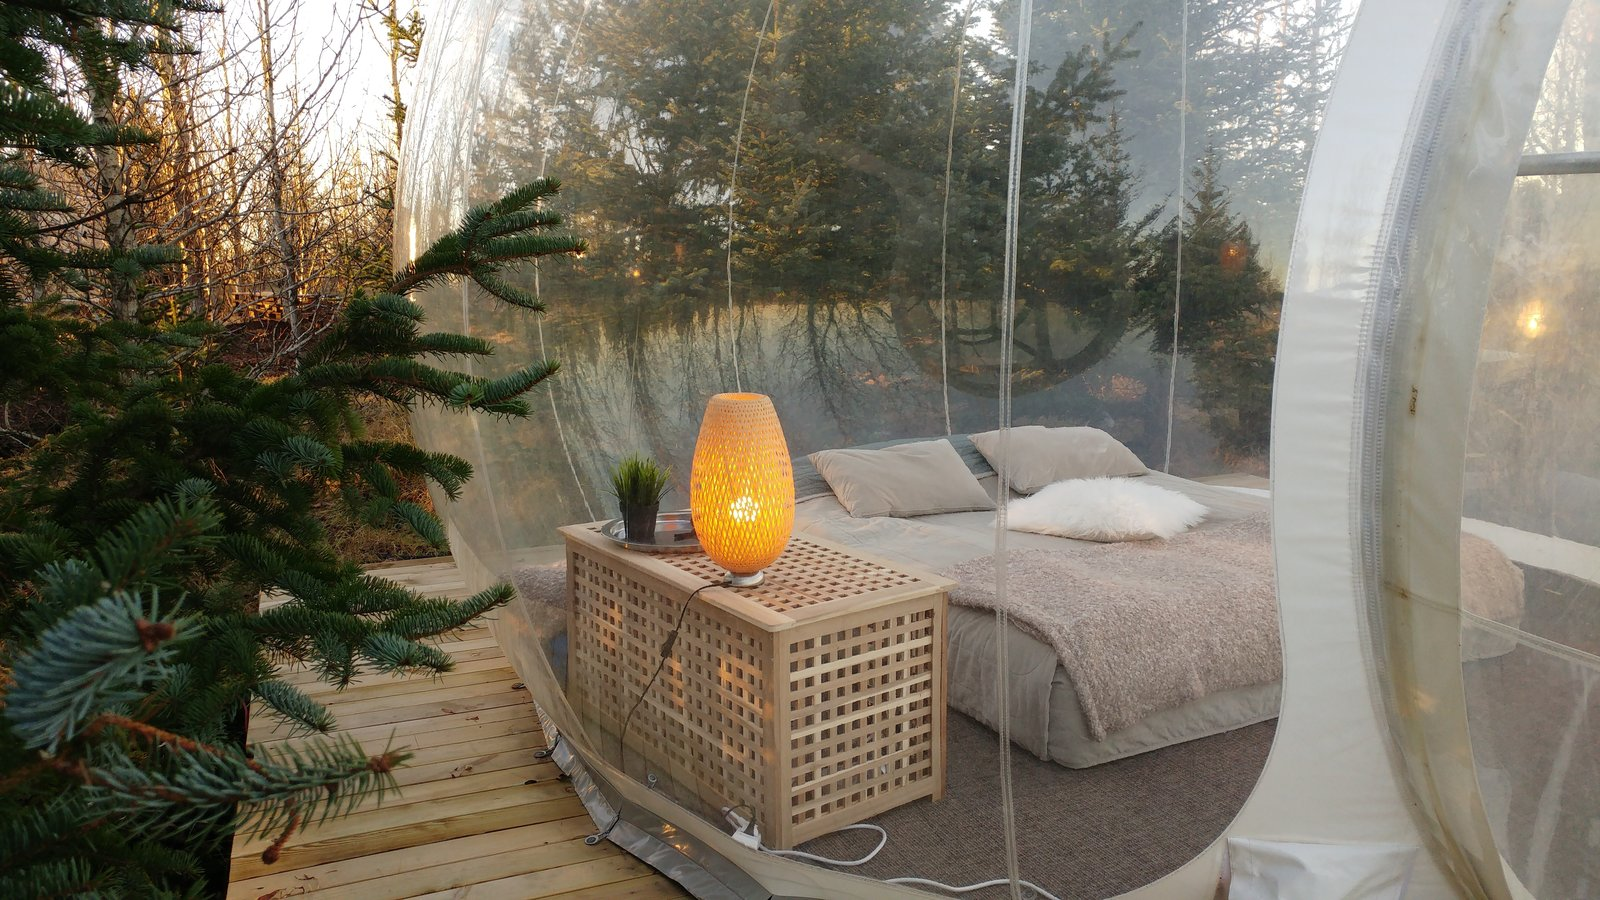 Outdoor, Trees, Woodland, and Wood Patio, Porch, Deck  Photo 2 of 6 in Sleep Under the Northern Lights in an Icelandic Bubble Hotel